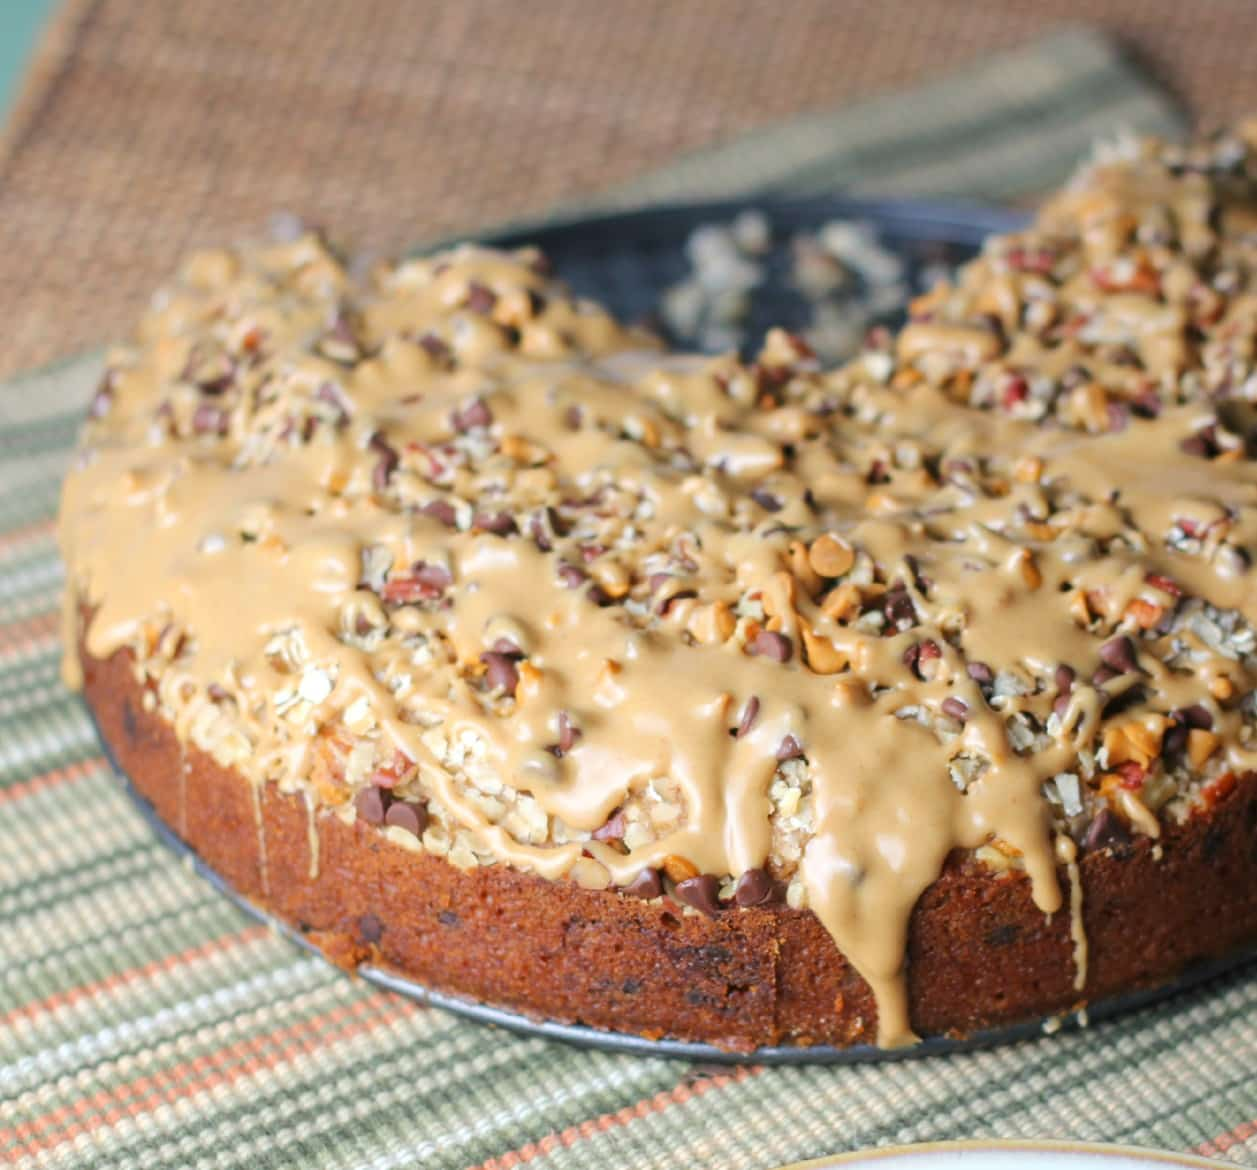 Chocolate Chip and Peanut Butter Oatmeal Cake55